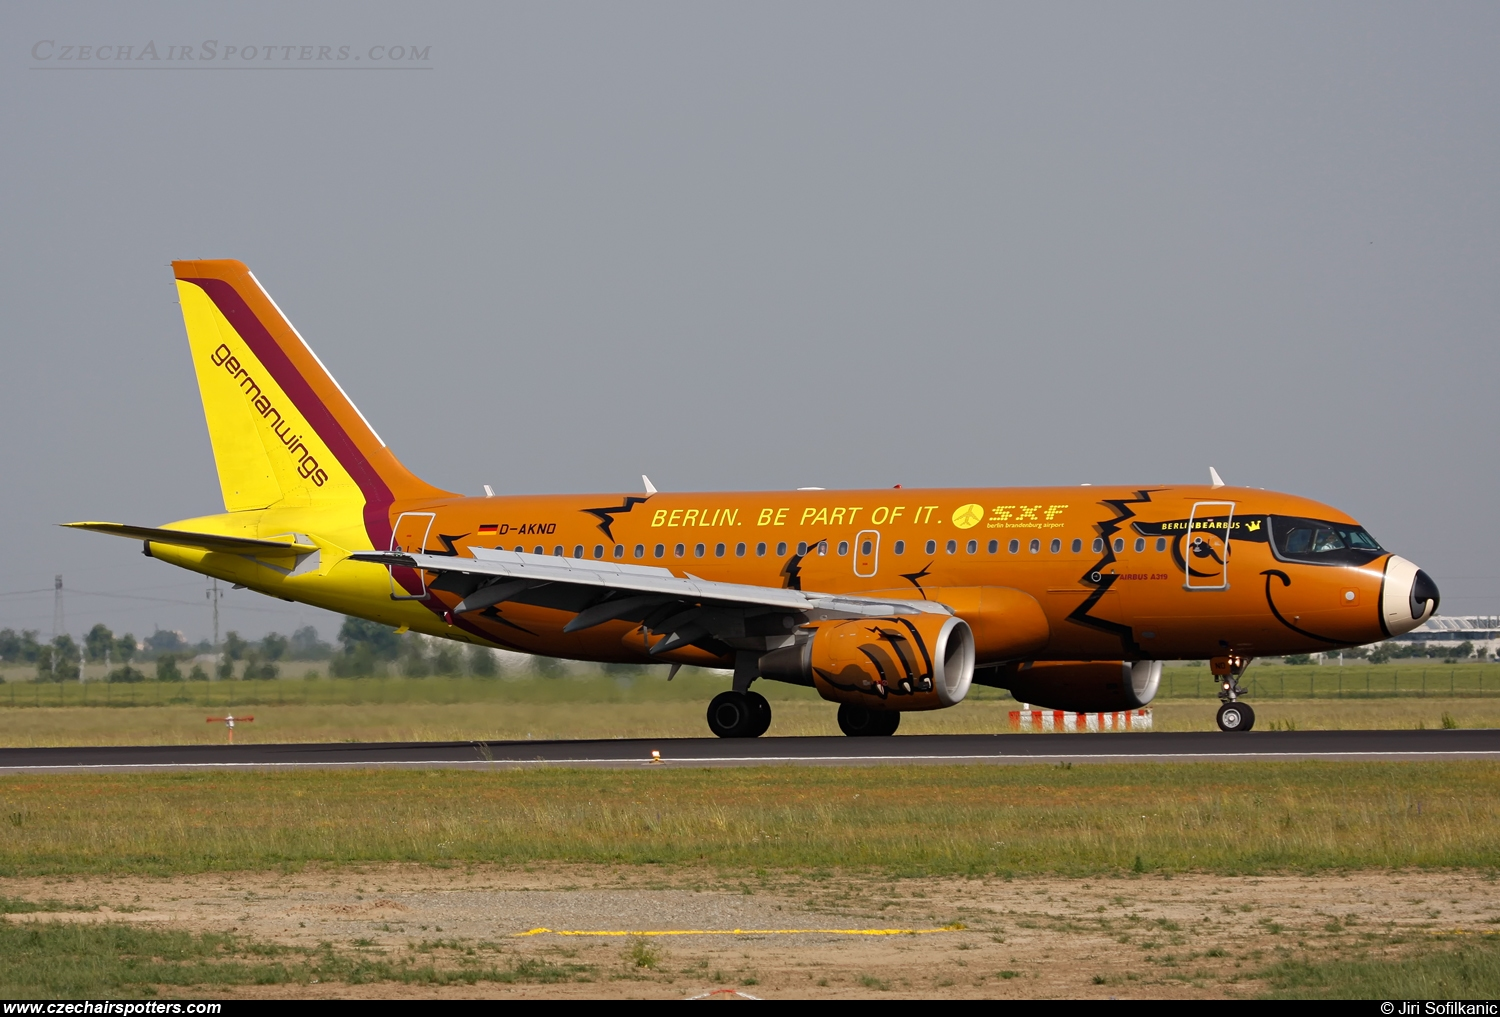 Germanwings – Airbus A319-112 D-AKNO